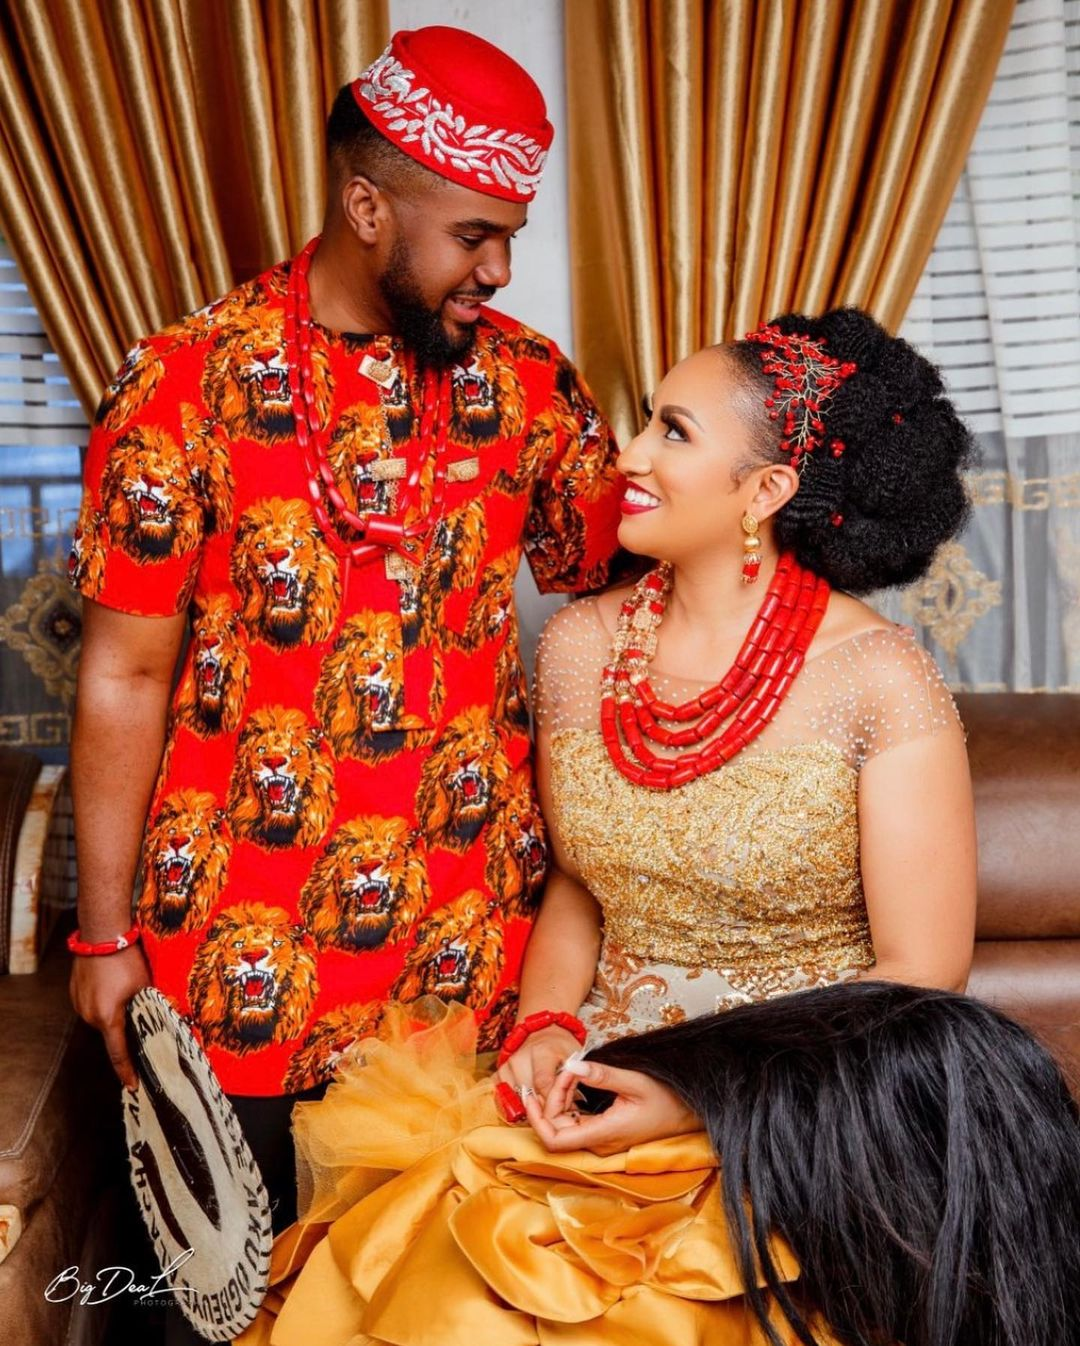 More photos from Actor, Williams Uchemba's traditional wedding | GCFRNG -  NIGERIA BREAKING NEWS TODAY | Breaking News